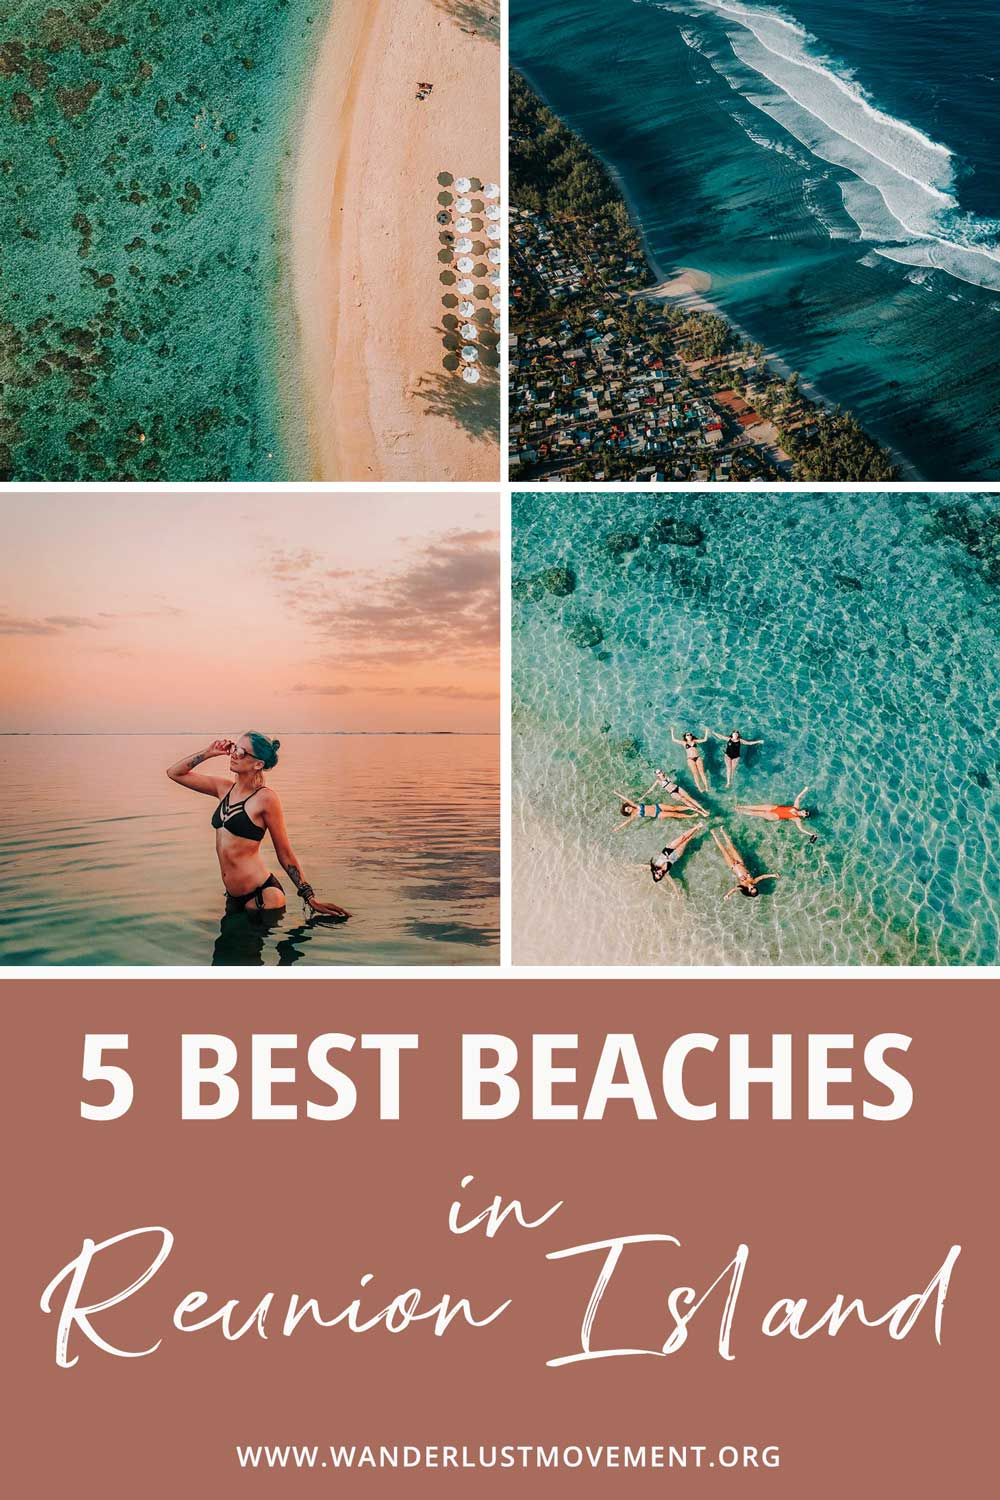 5 of the Most Spectacular Beaches on the West Coast of Reunion Island